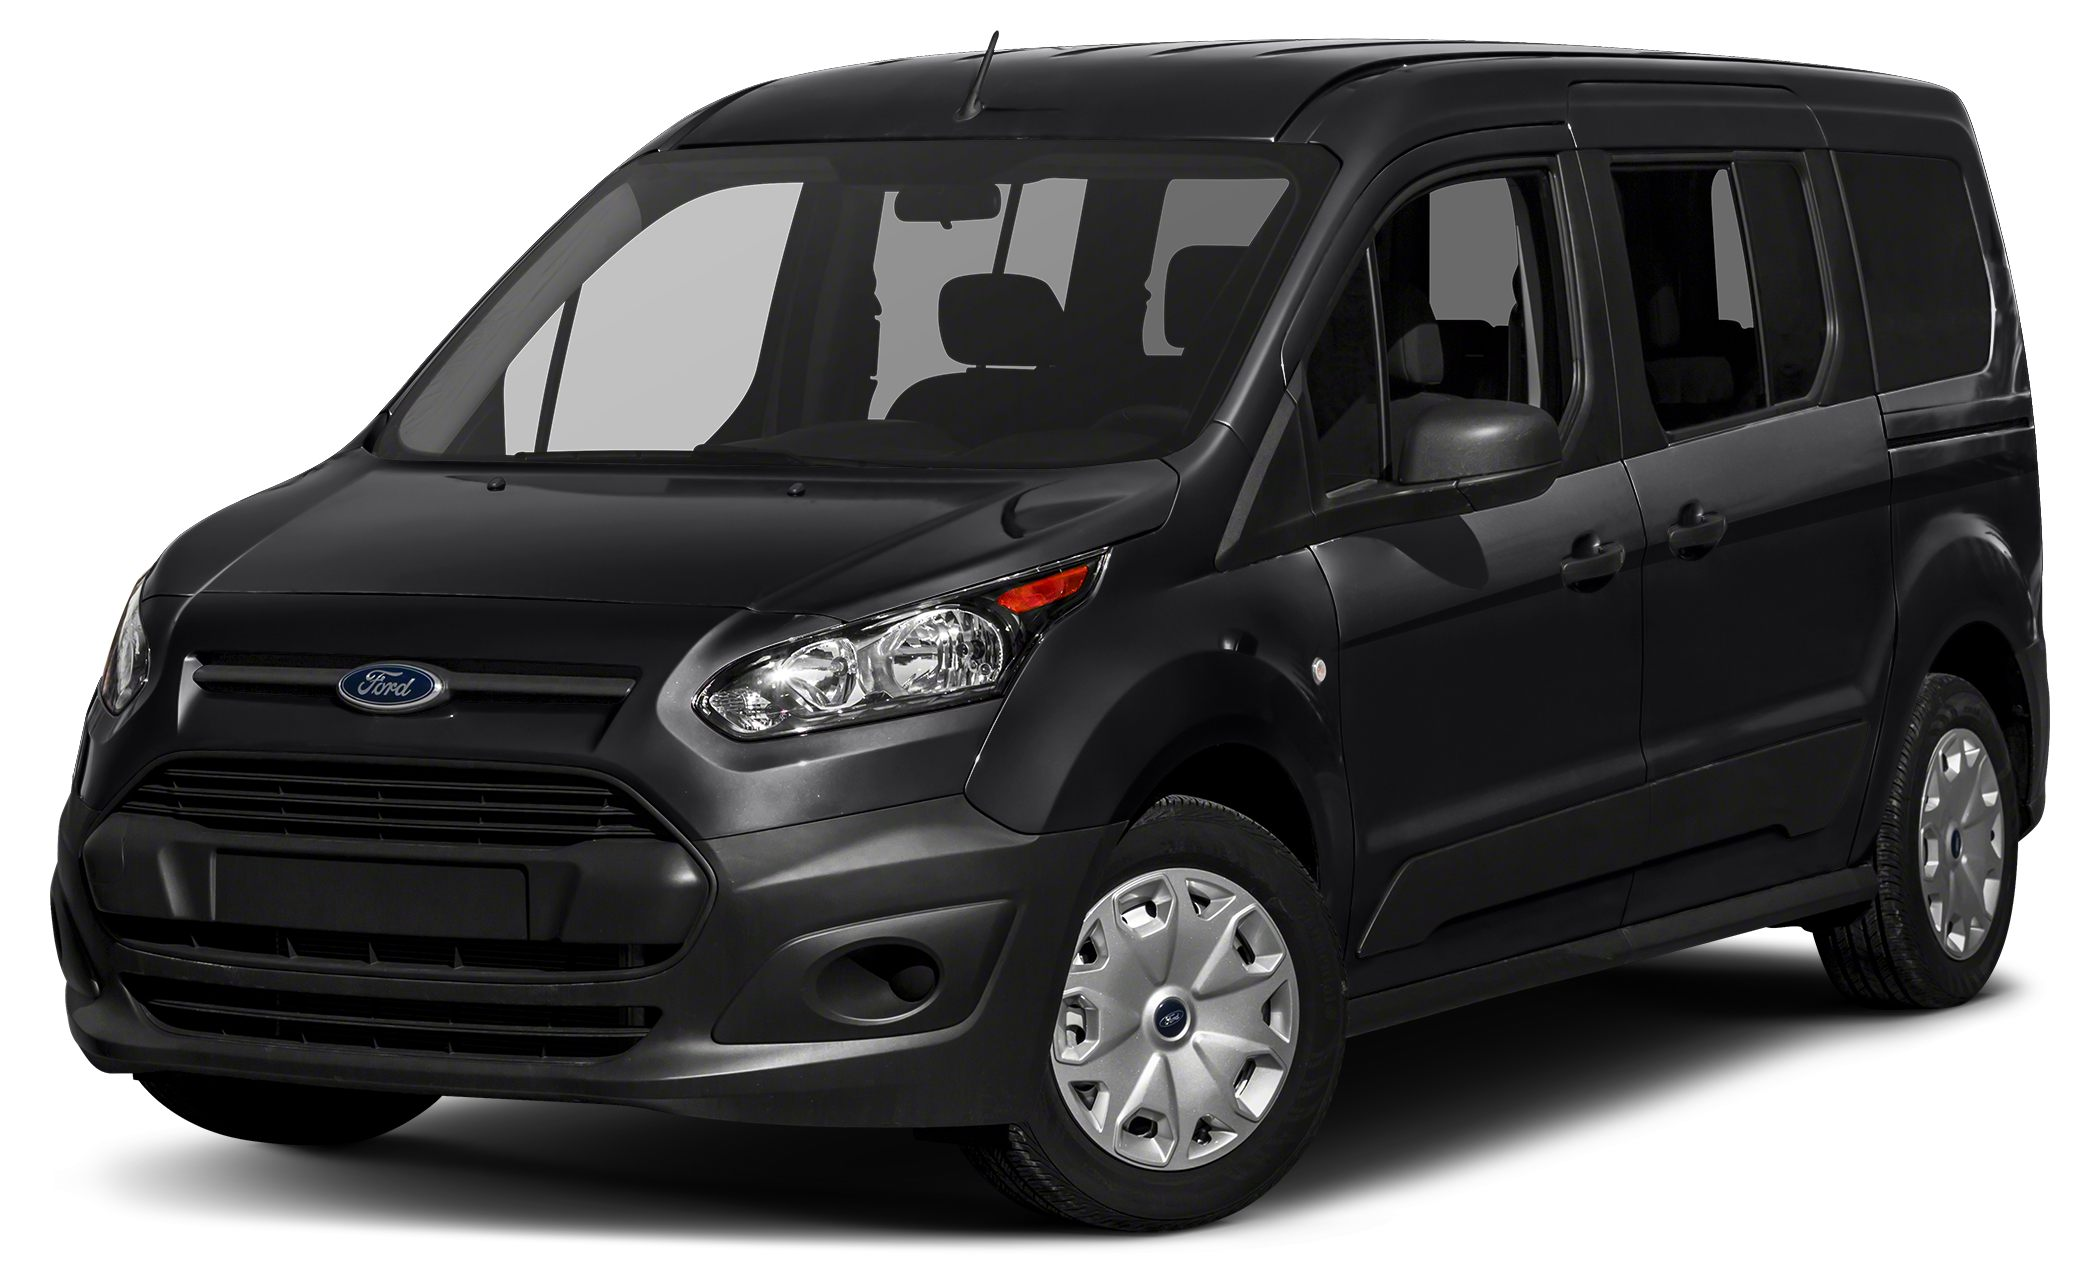 2016 Ford Transit Connect XLT CARFAX One-Owner Clean CARFAX Priced below KBB Fair Purchase Price